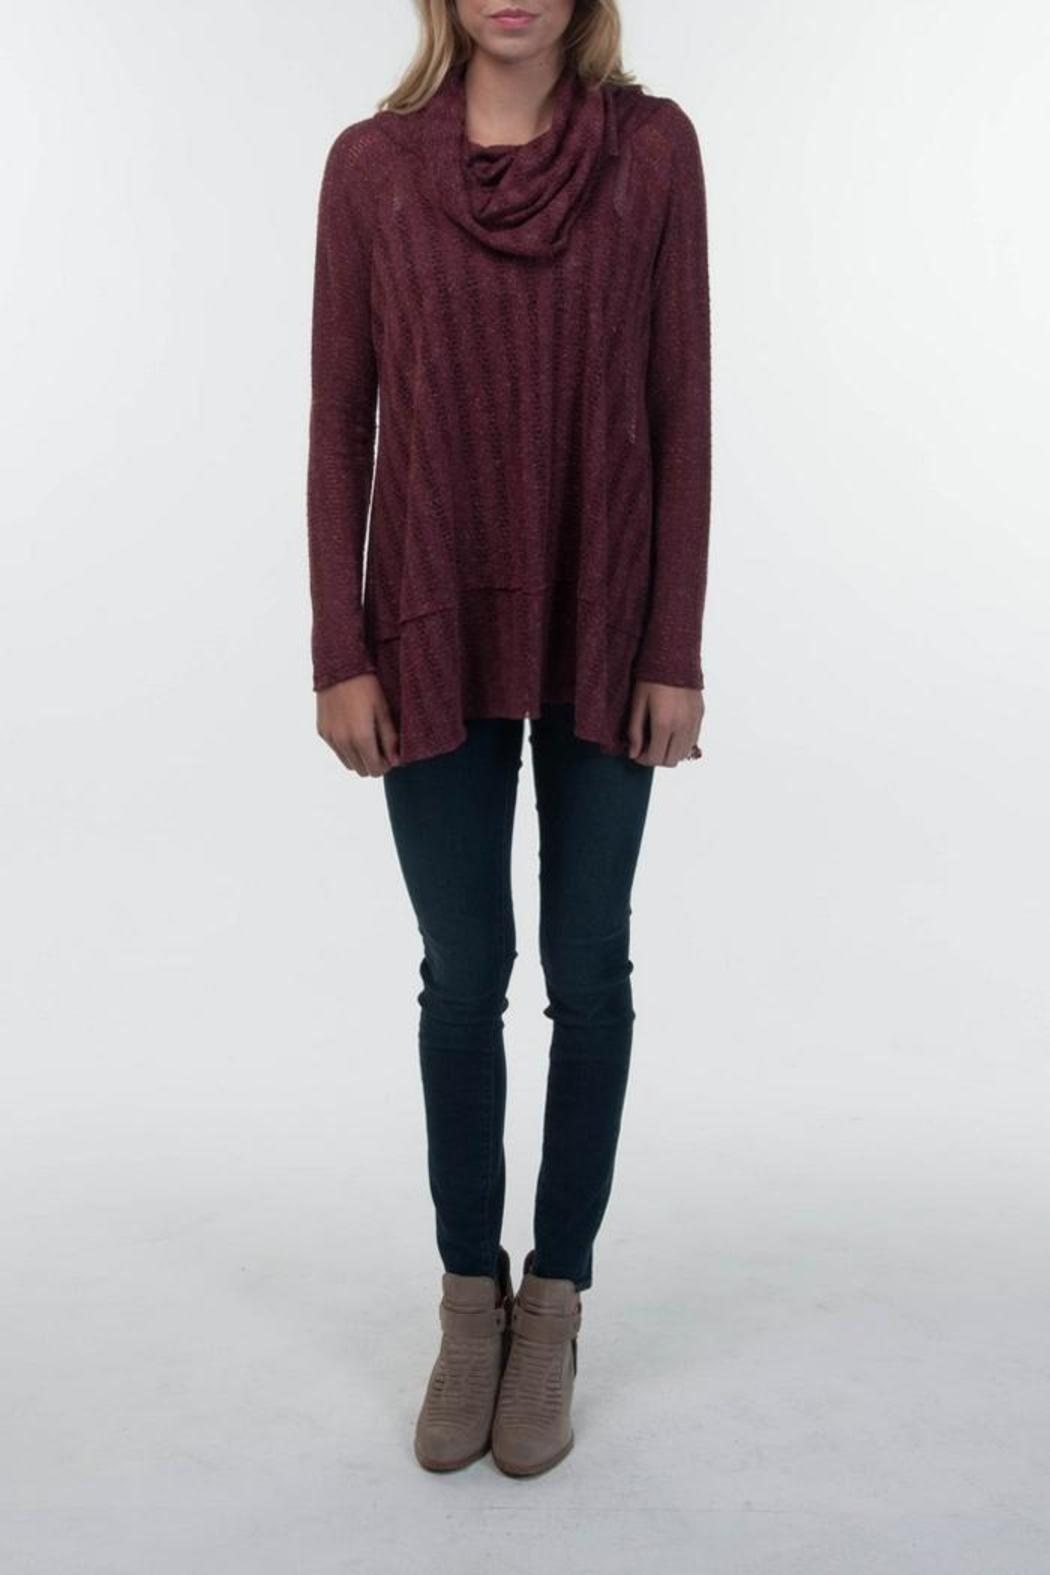 PPLA Broadway Cowlneck Sweater - Main Image